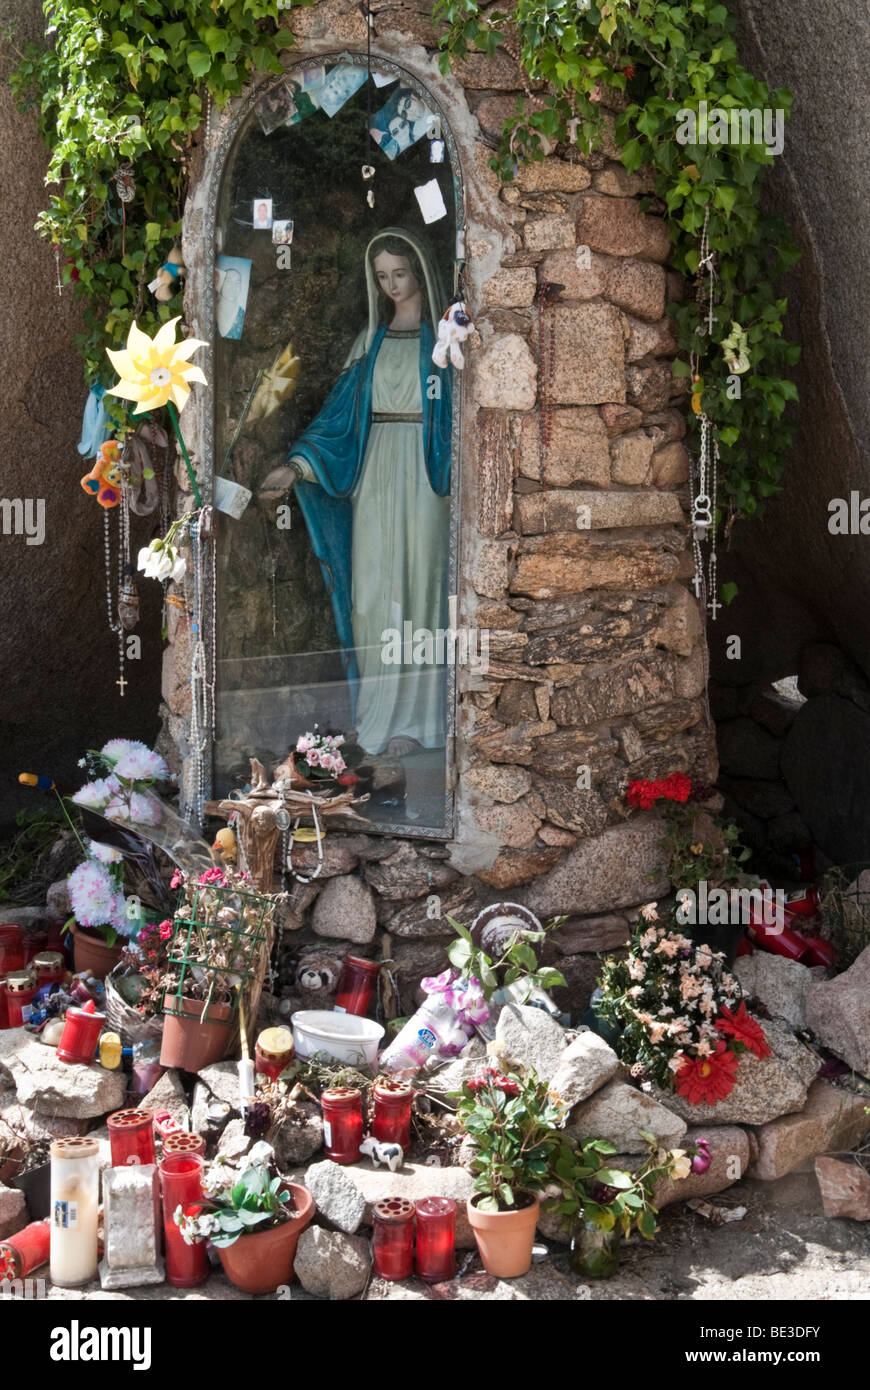 Roadside shrine with statue of Virgin Mary and offerings in northern Sardinia, Italy - Stock Image